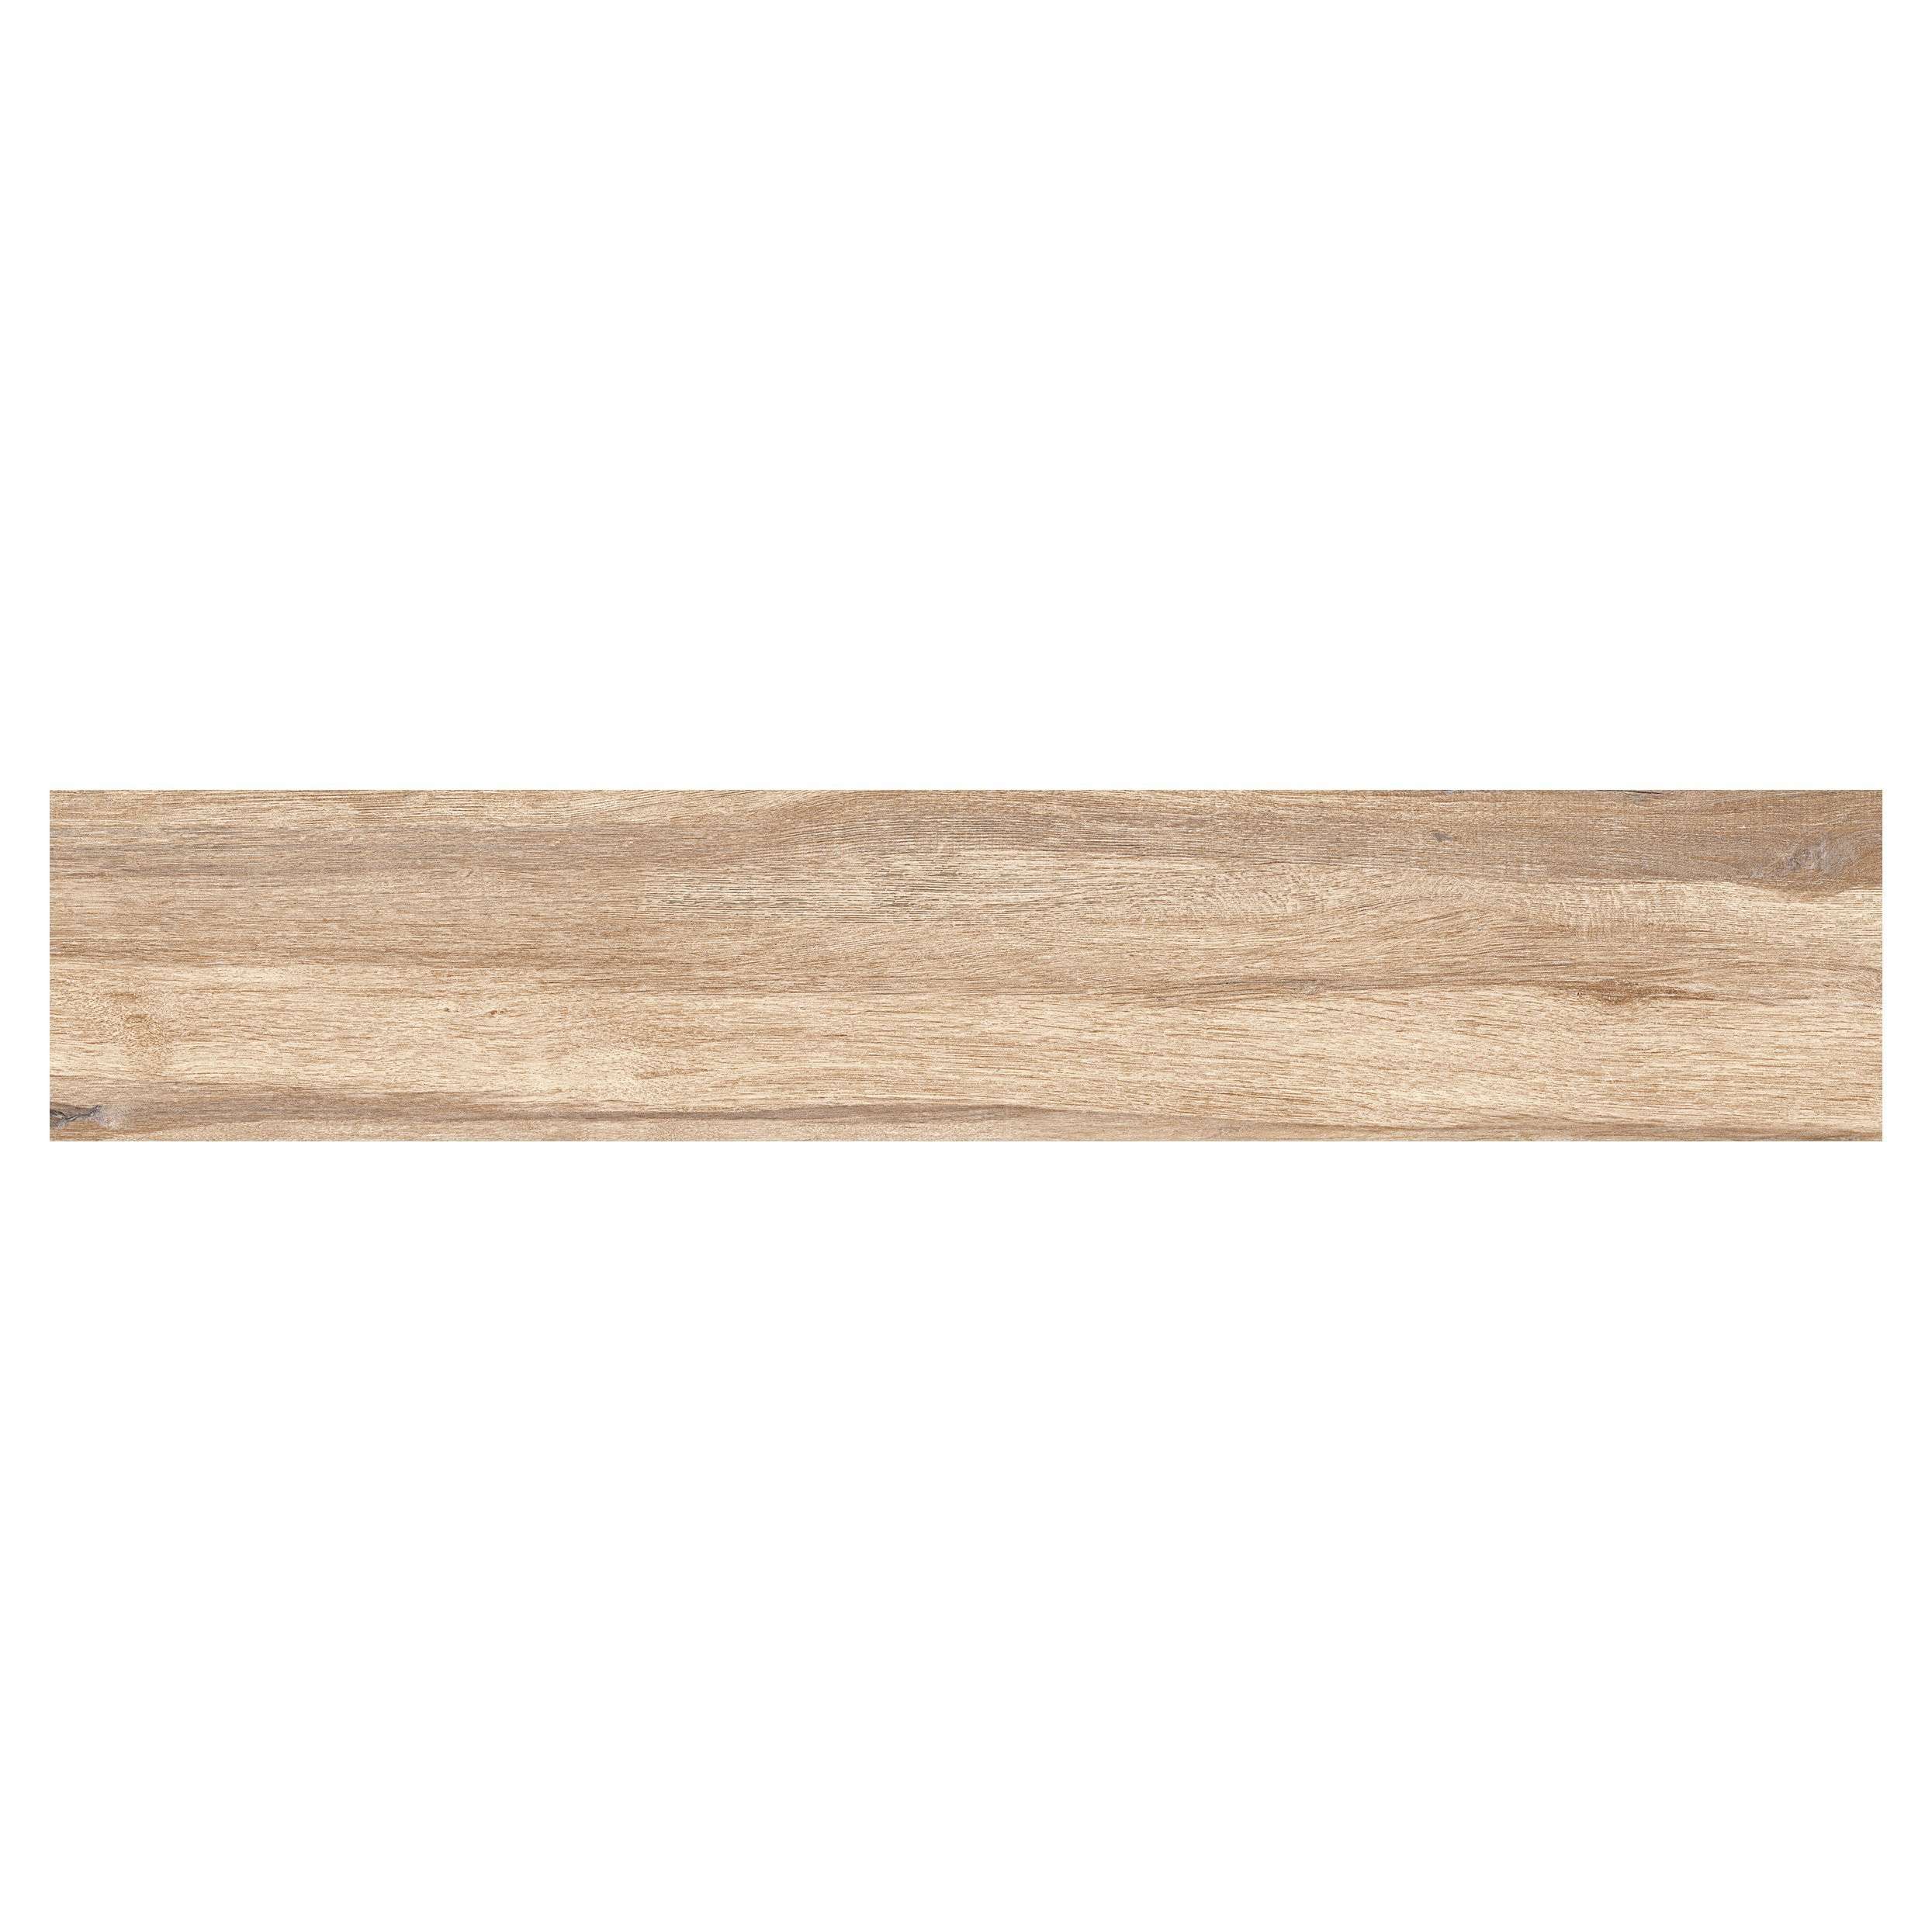 Truewood Cream Wood Plank Porcelain Tile 10 X 47